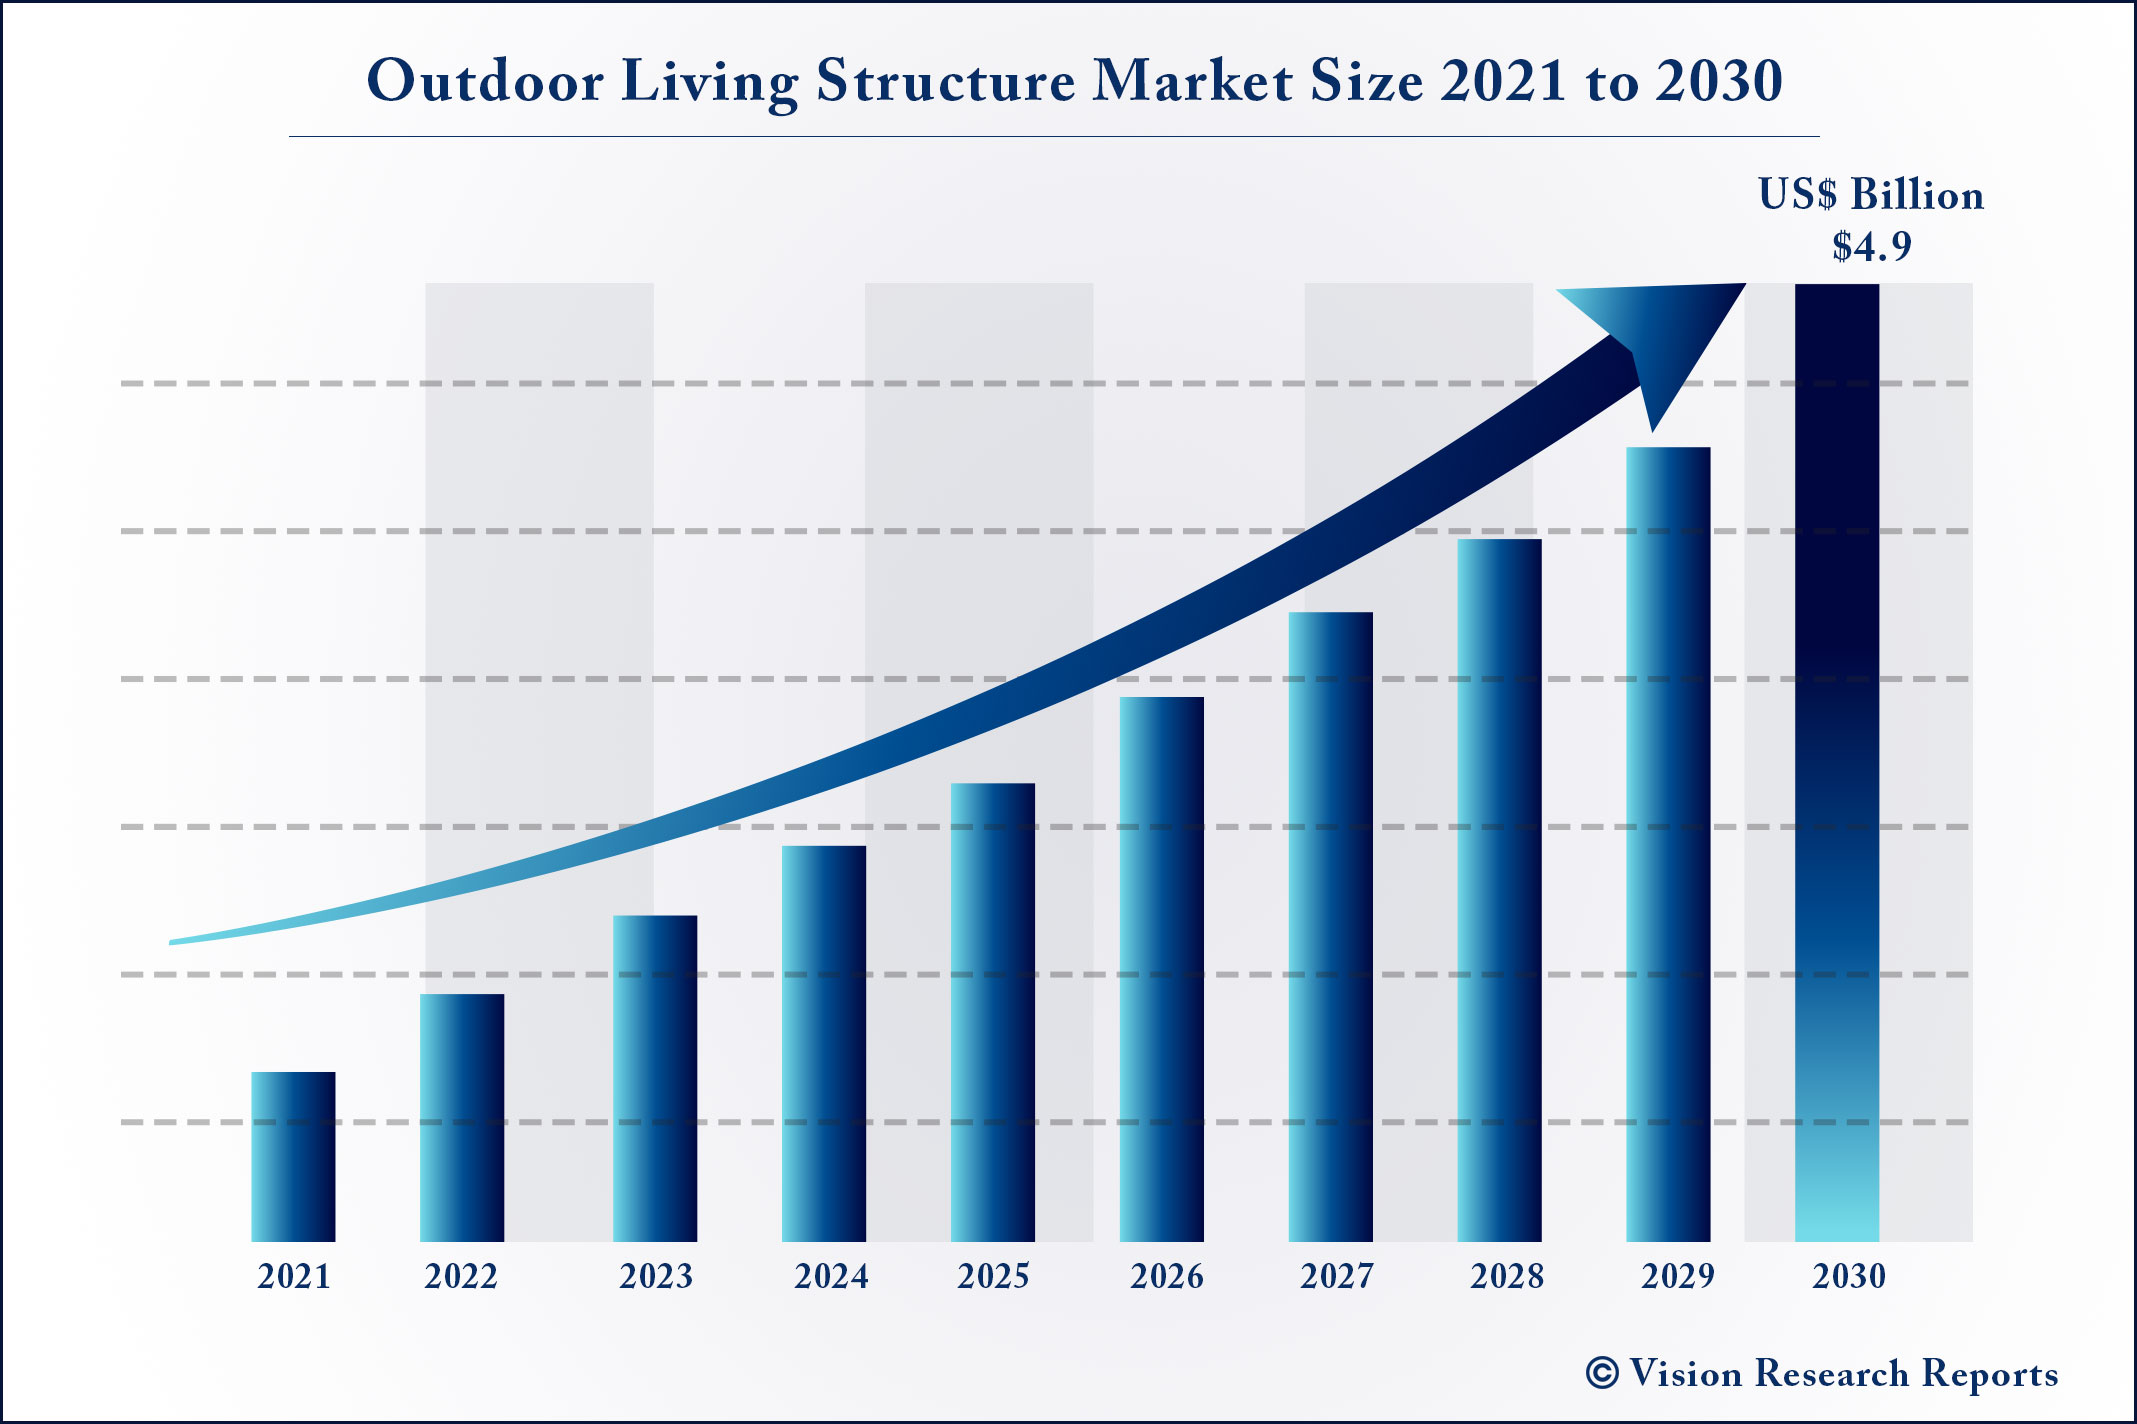 Outdoor Living Structure Market Size 2021 to 2030